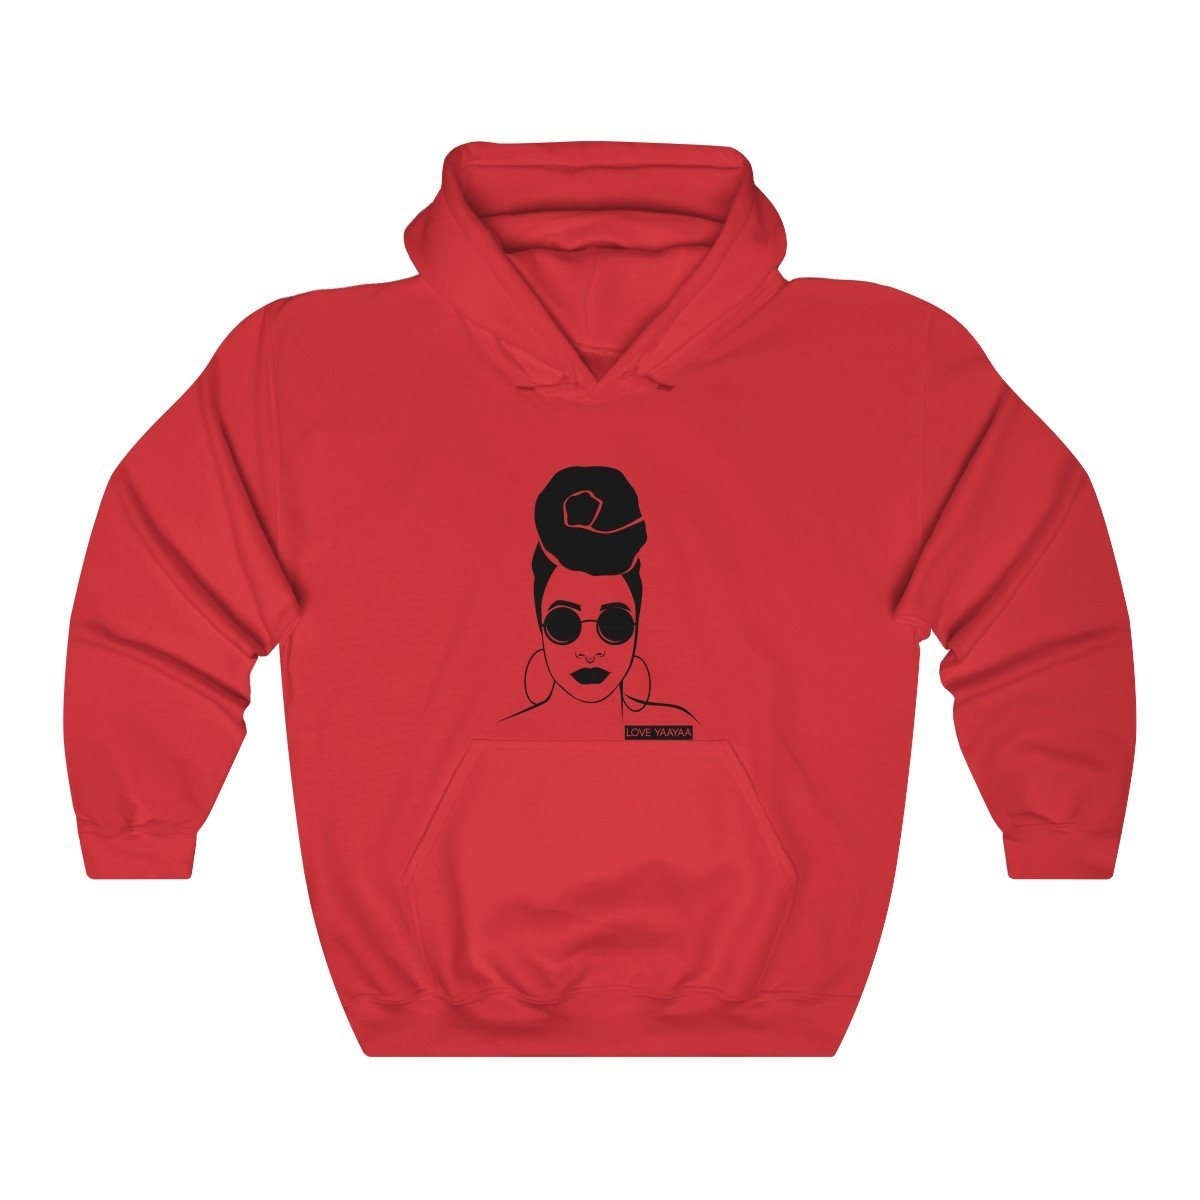 Headwrap Babe Unisex Hooded Sweatshirt - loveyaayaa